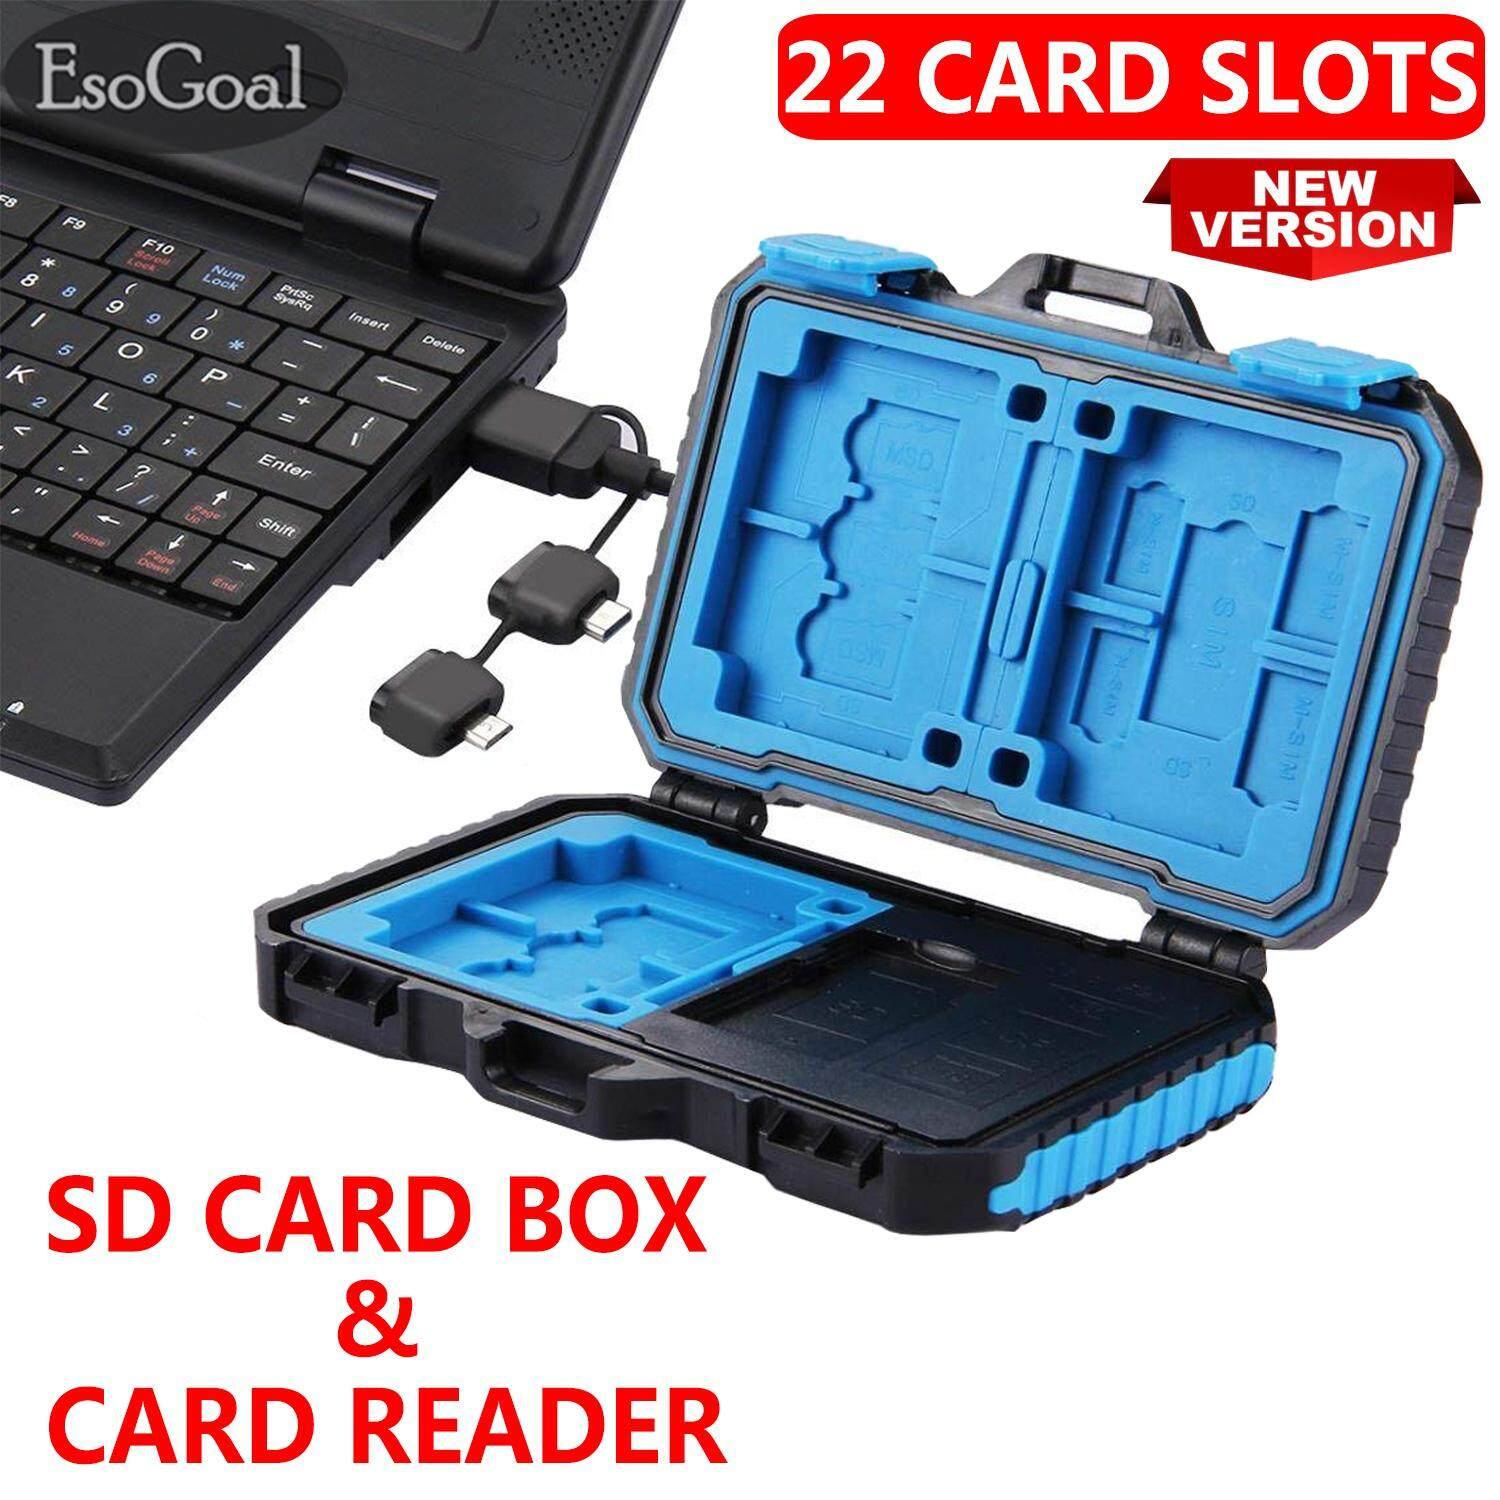 EsoGoal การ์ดรีดเดอร์+เมมโมรี่การ์ด Card Reader + Memory Card Case SD Card Storage Box Waterproof Shockproof Protection Micro SD Card Case Holder TF SD CF Cards Carrying Case Storage Box(22 Slots)